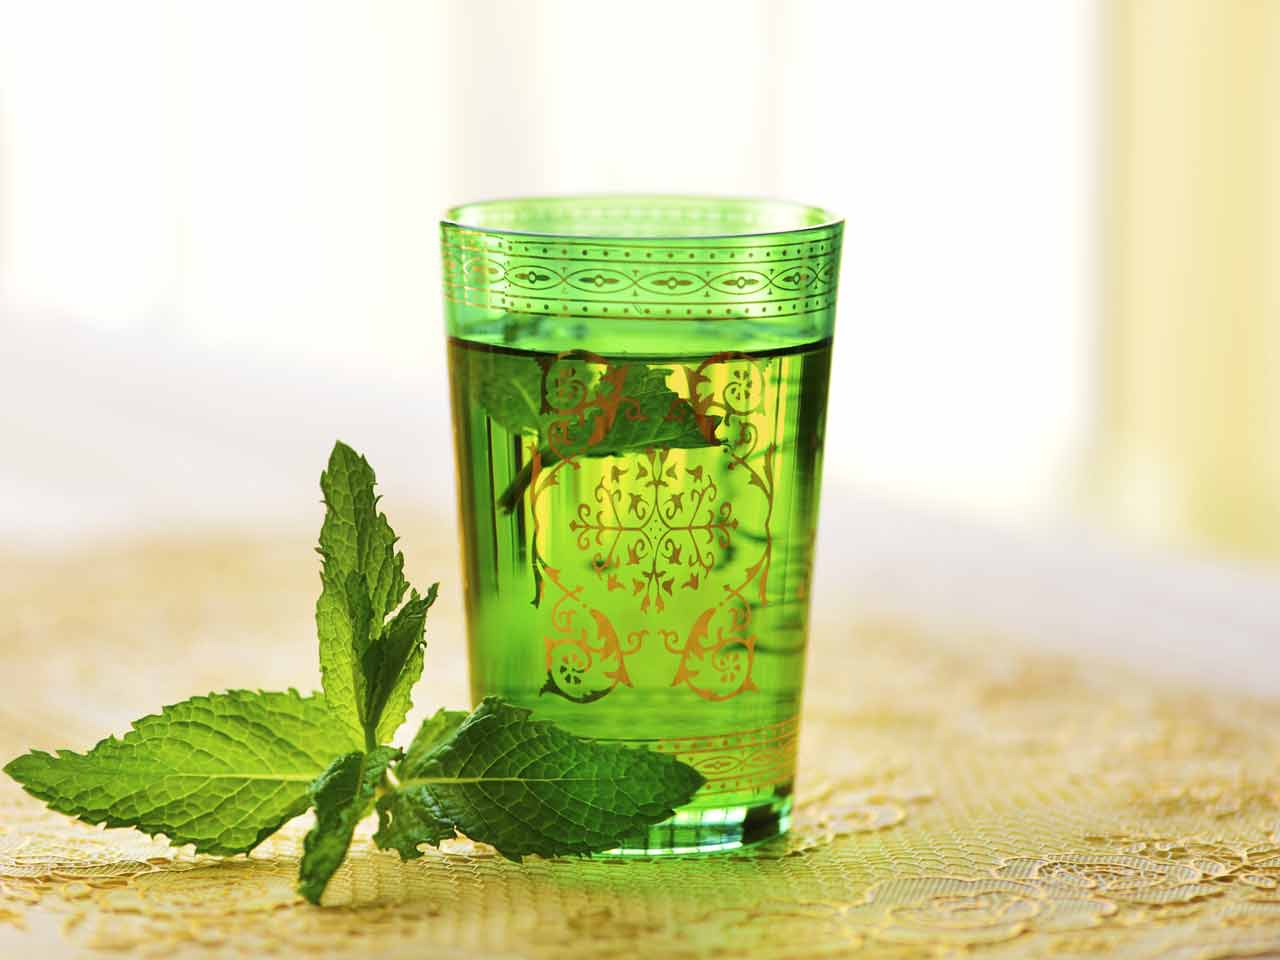 Mint tea may help alertness